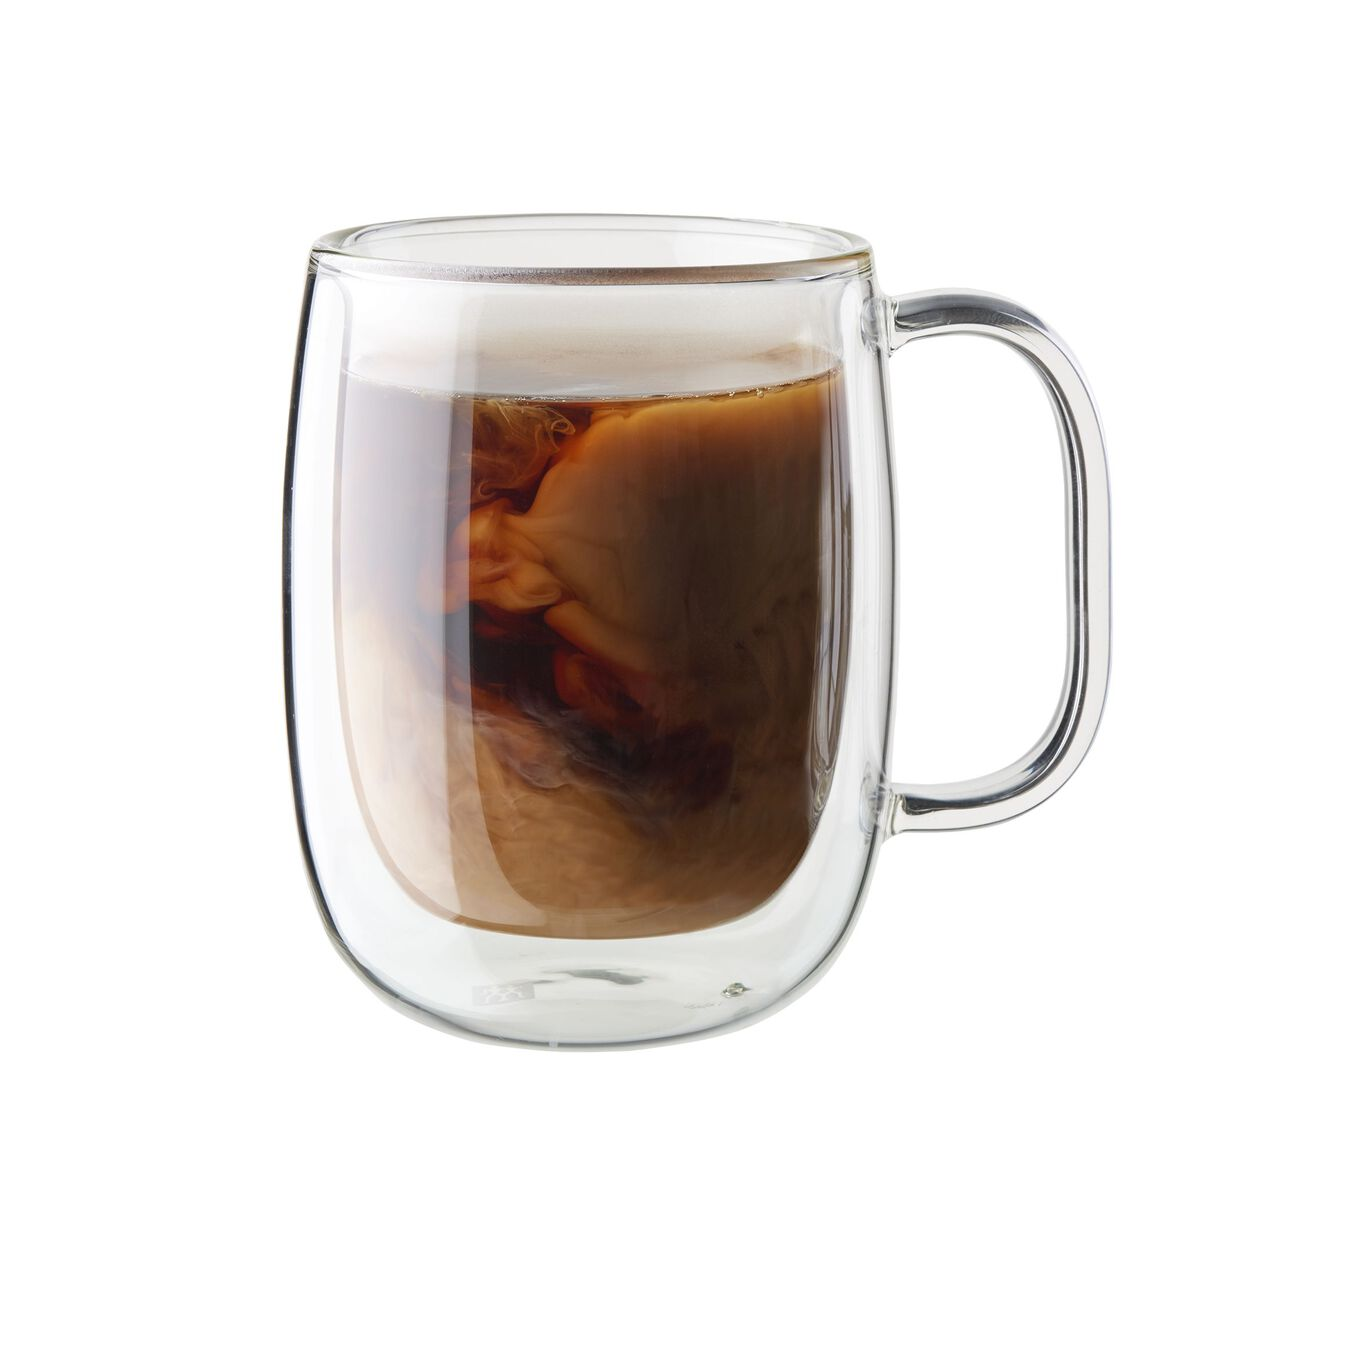 2-pc Double-Wall Glass Coffee Mug Set,,large 1